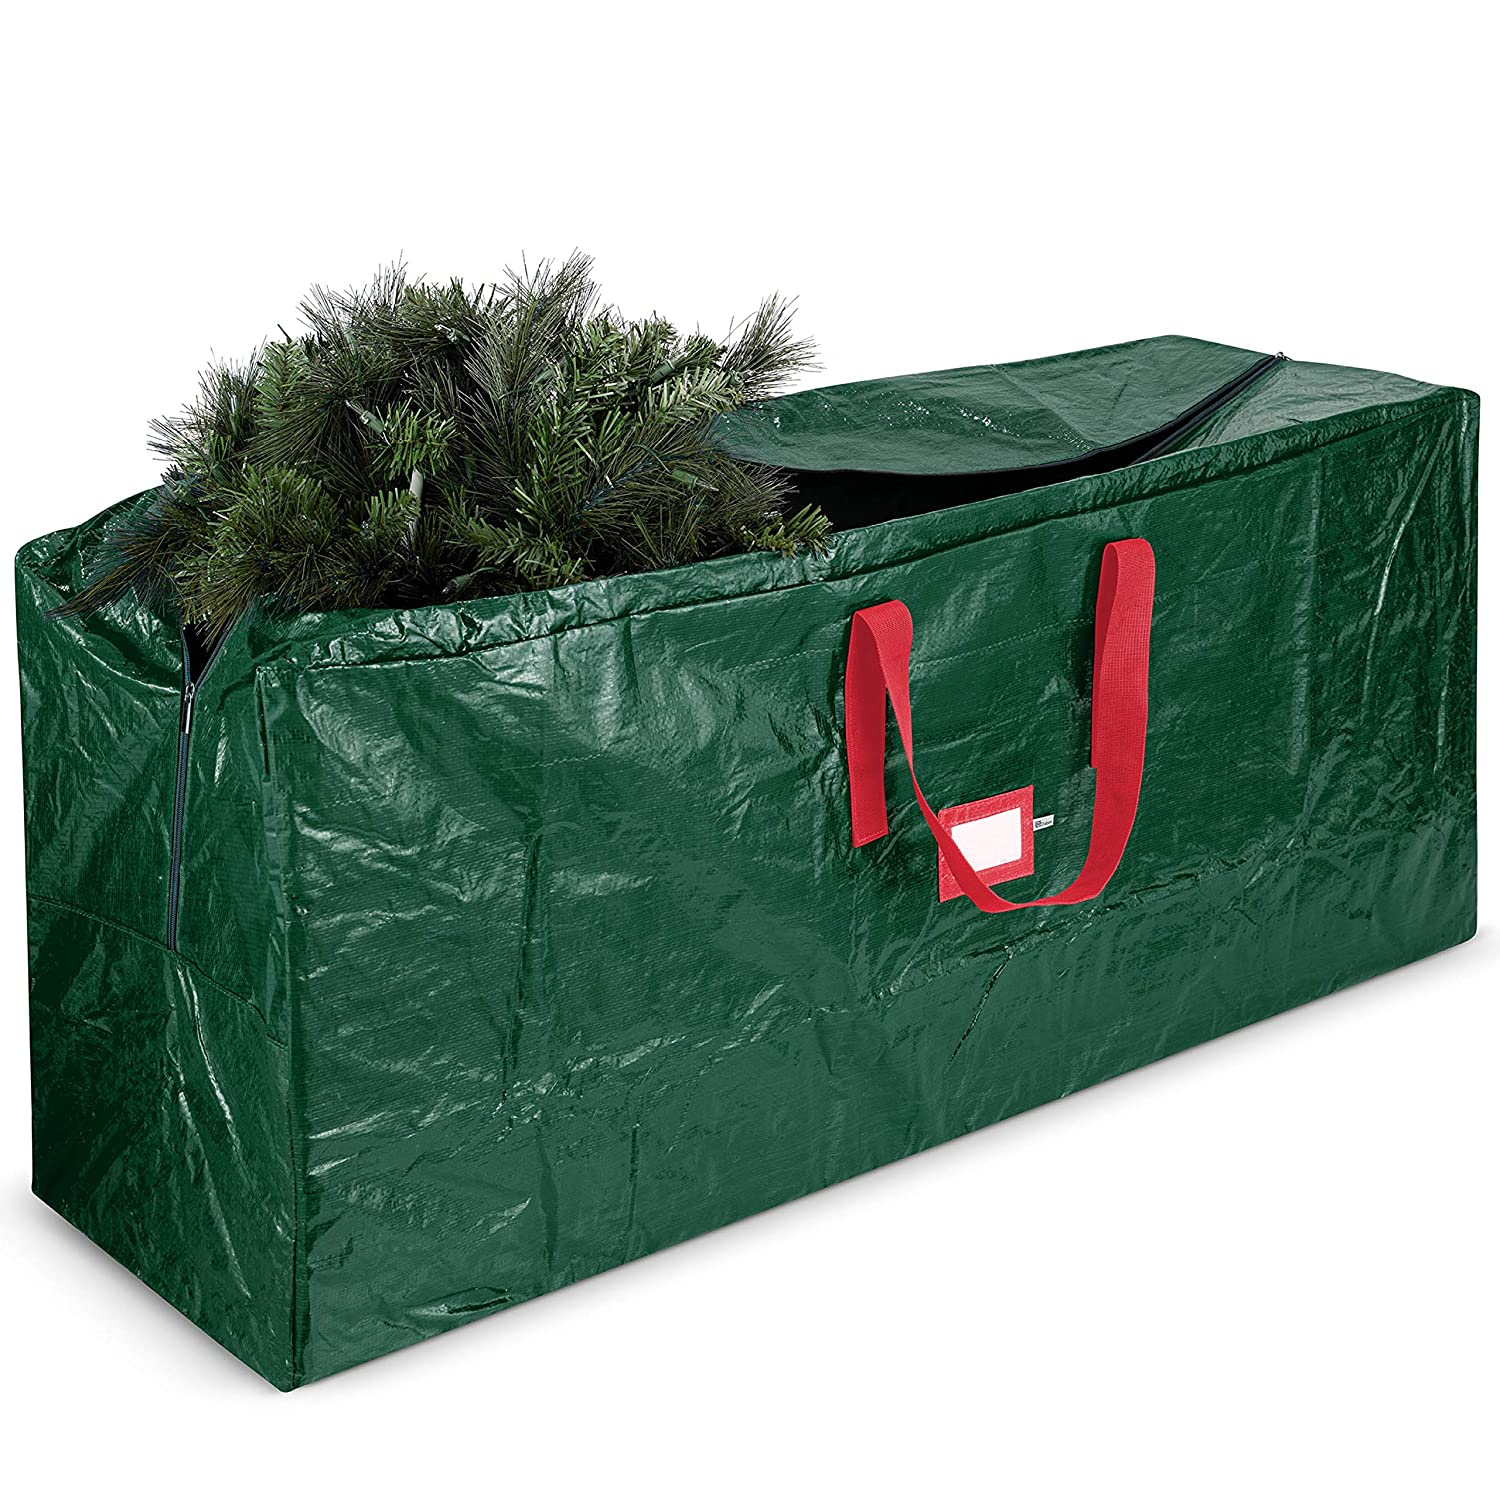 Christmas Tree Bags.Large Christmas Tree Storage Bag Fits Up To 9 Ft Tall Holiday Artificial Disassembled Trees With Durable Reinforced Handles Dual Zipper